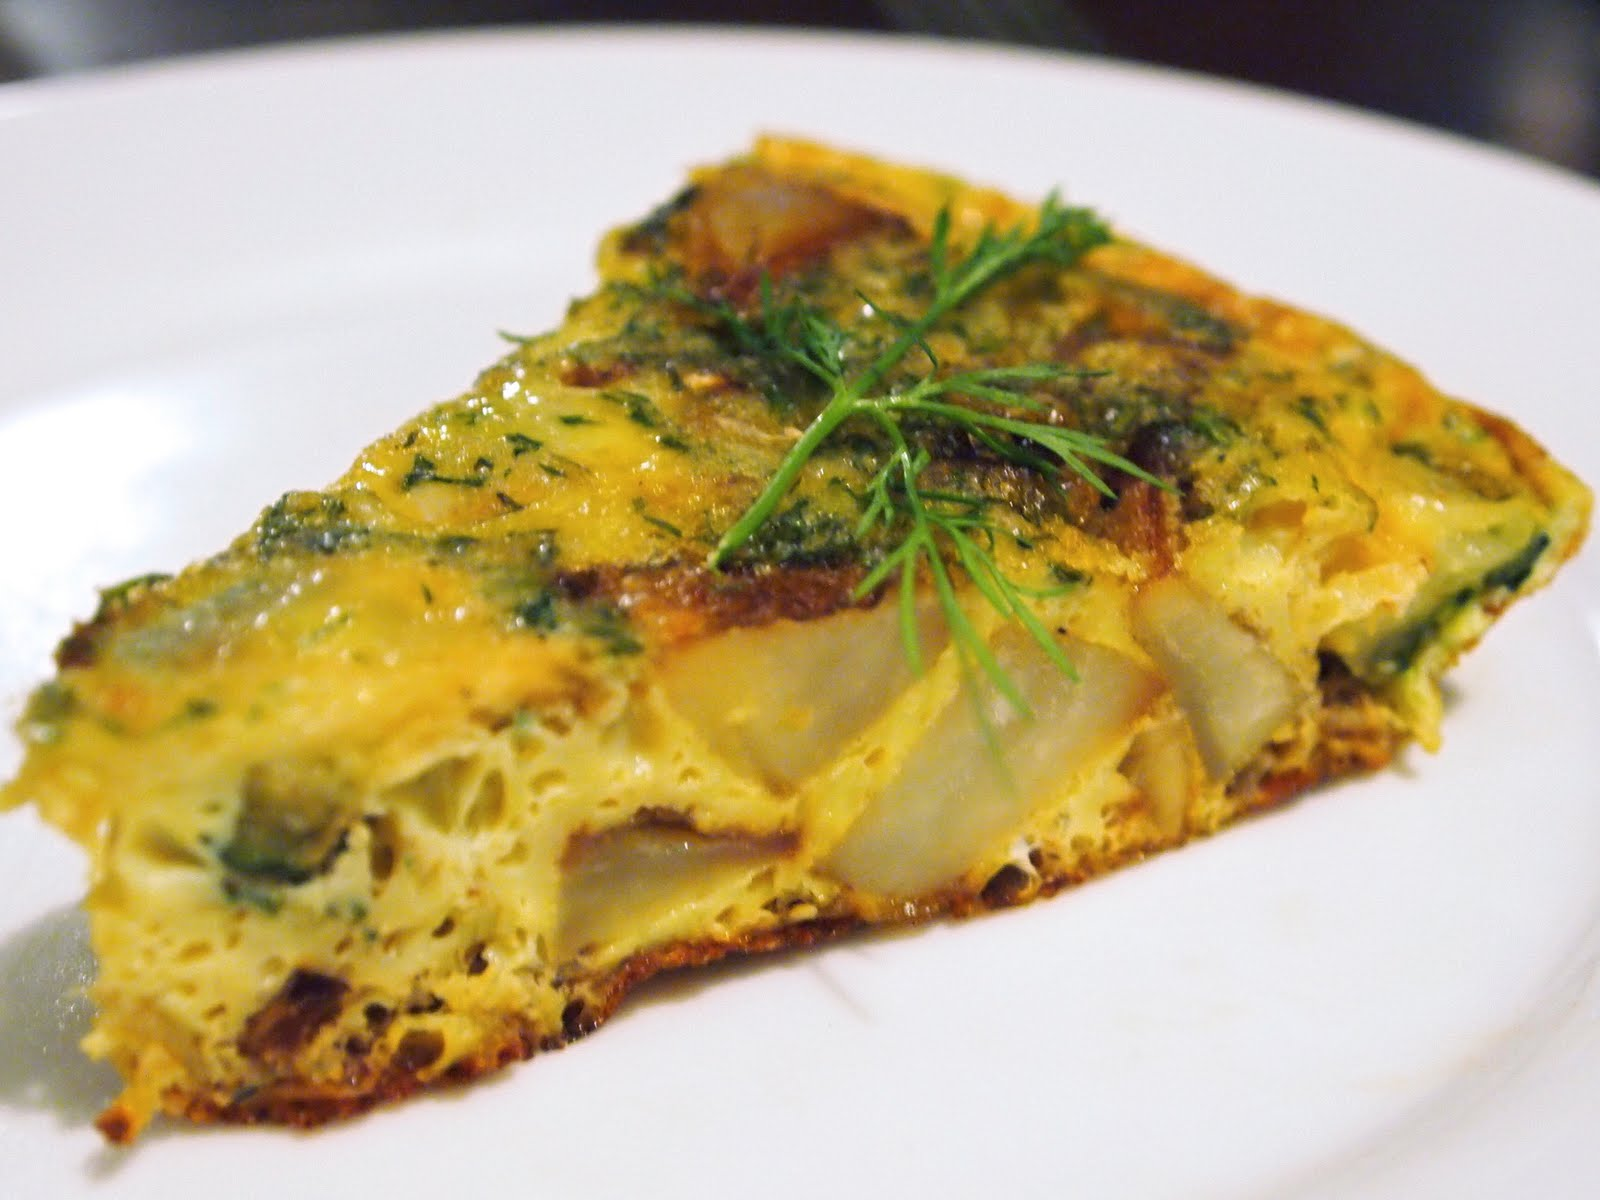 Michelle's tiny kitchen: Potato and Zucchini Frittata